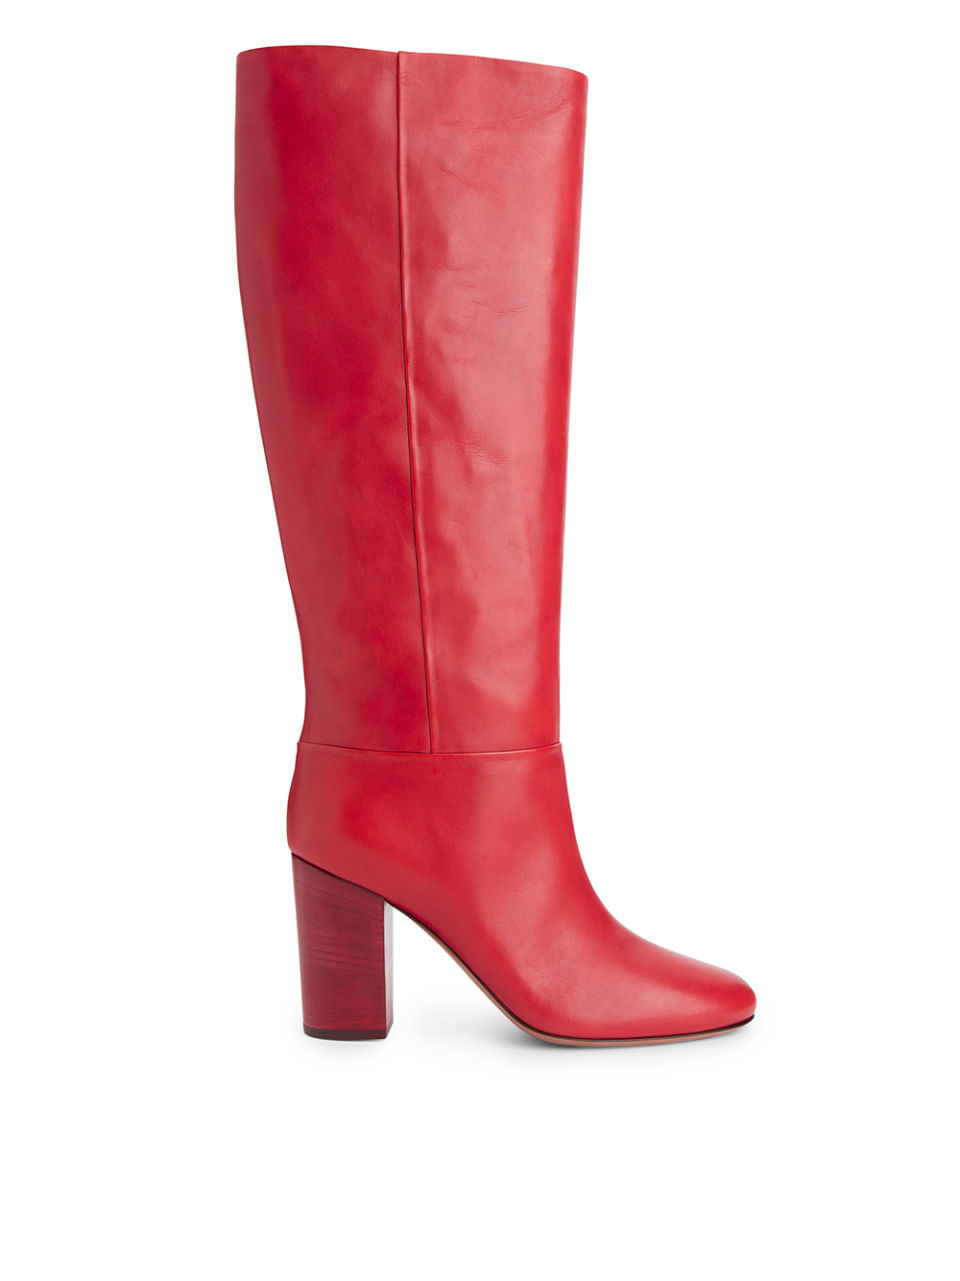 Arket High Heeled Leather Boots £250